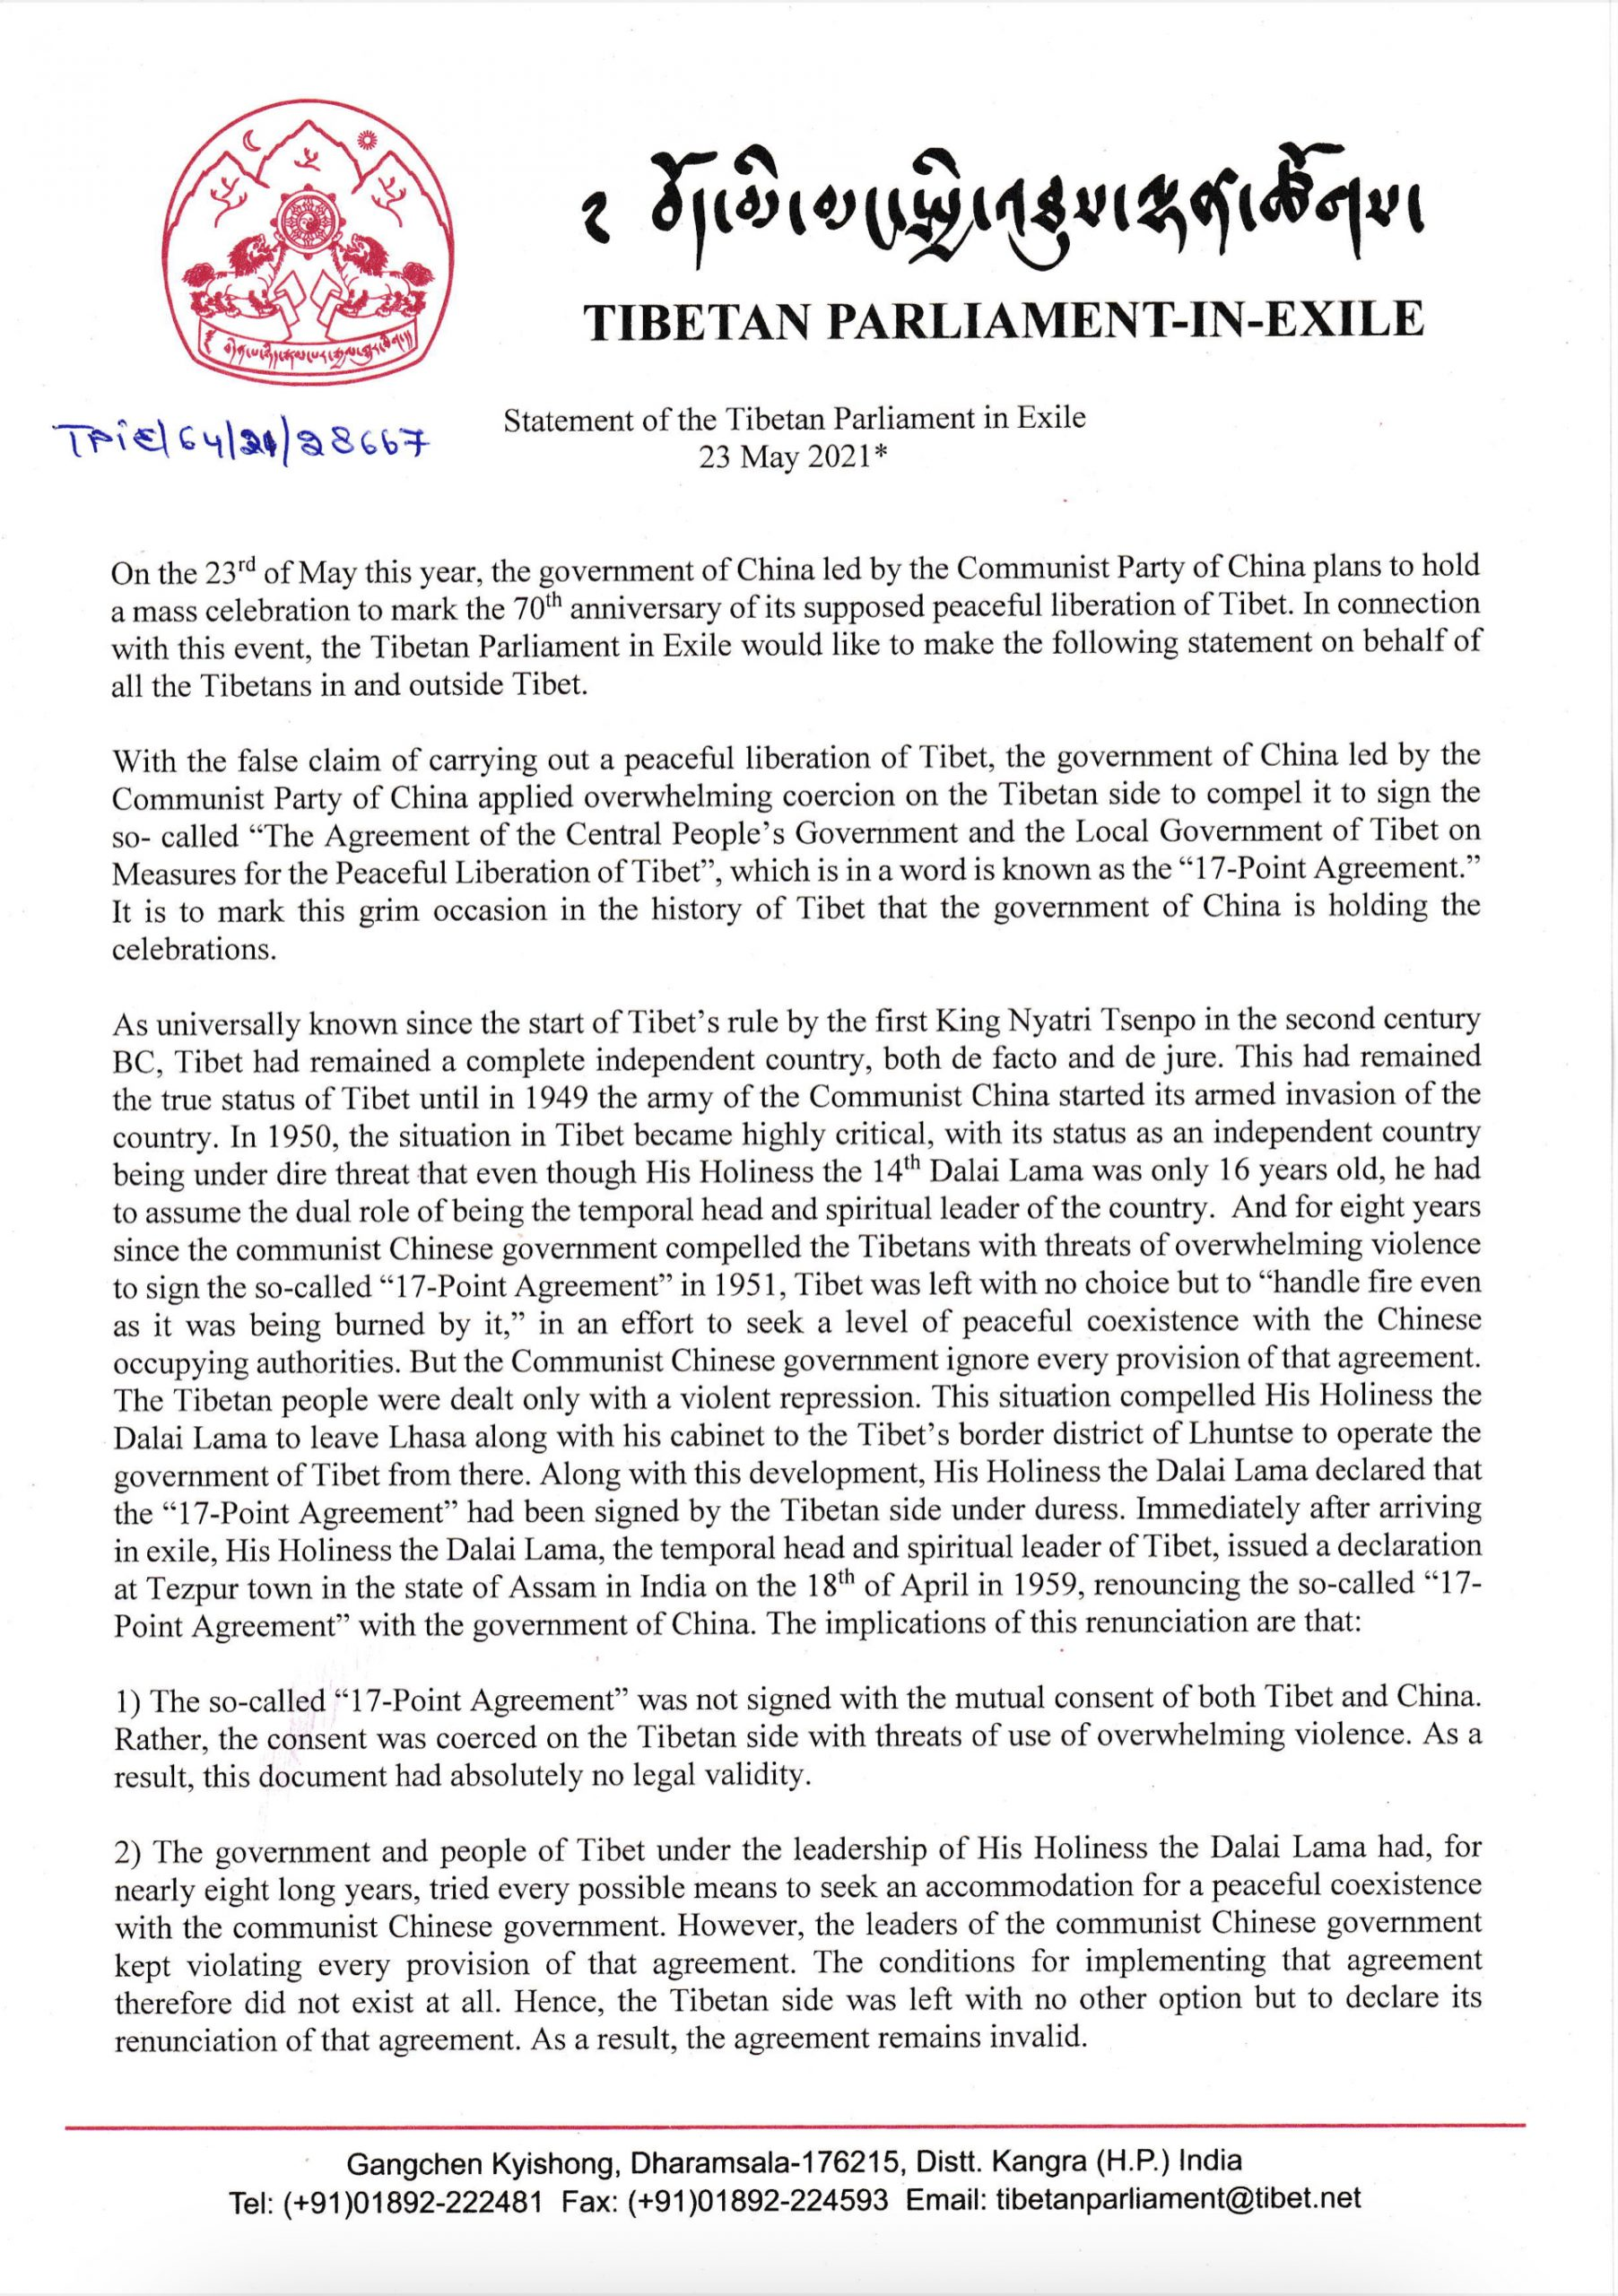 Statement of the Tibetan Parliament-in-Exile